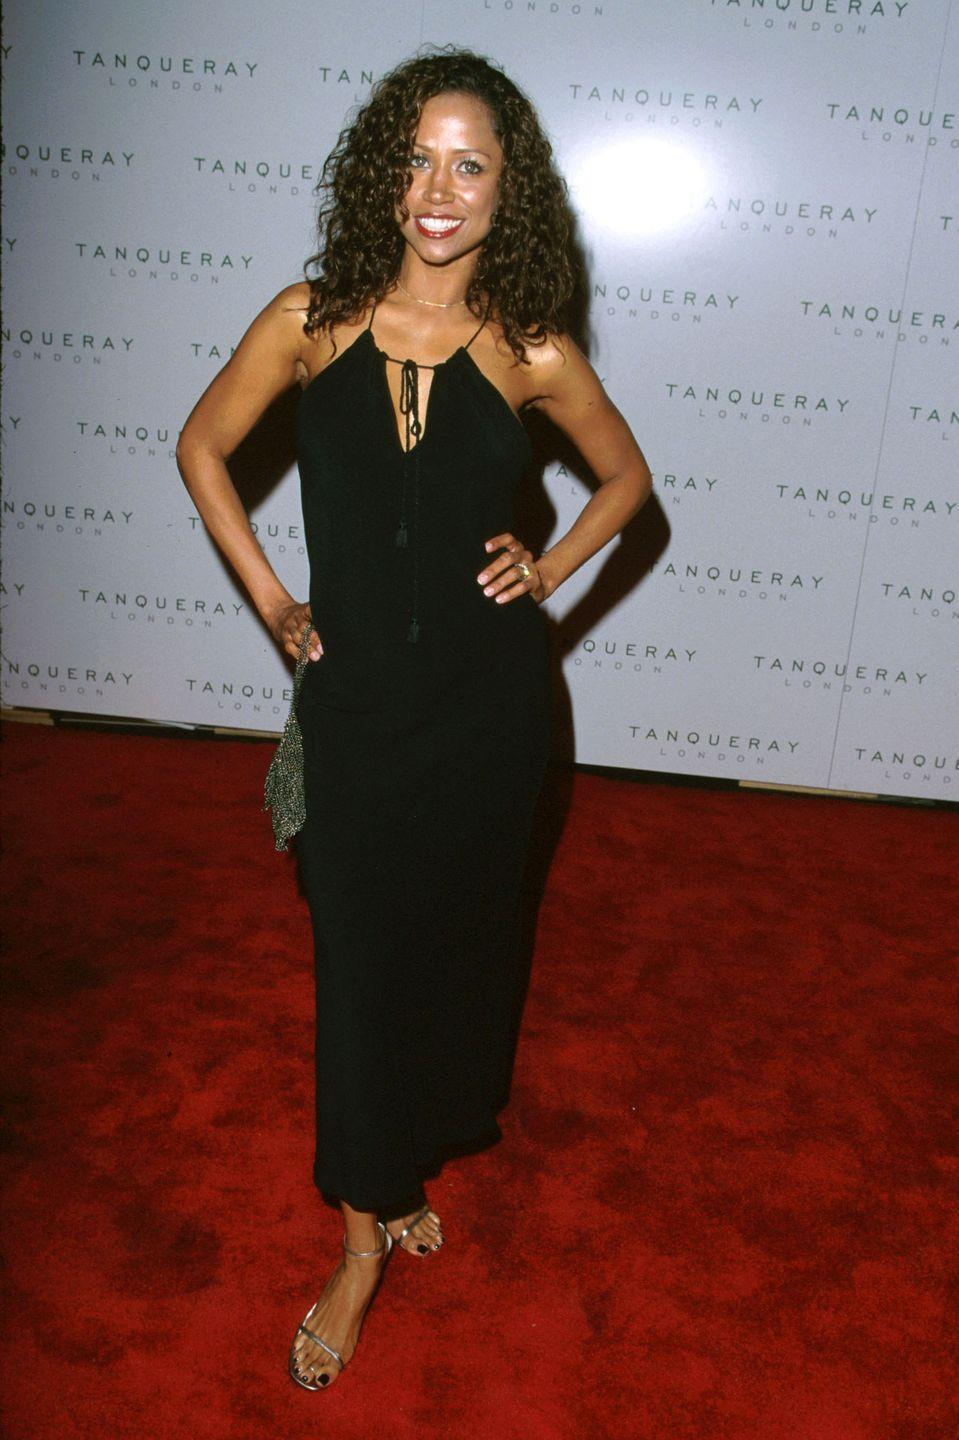 <p>Stacey Dash was catapulted into fame in the '90s when she starred in the film <em>Clueless</em> as Dionne, Cher's best friend. The actress did some television work as well. </p>